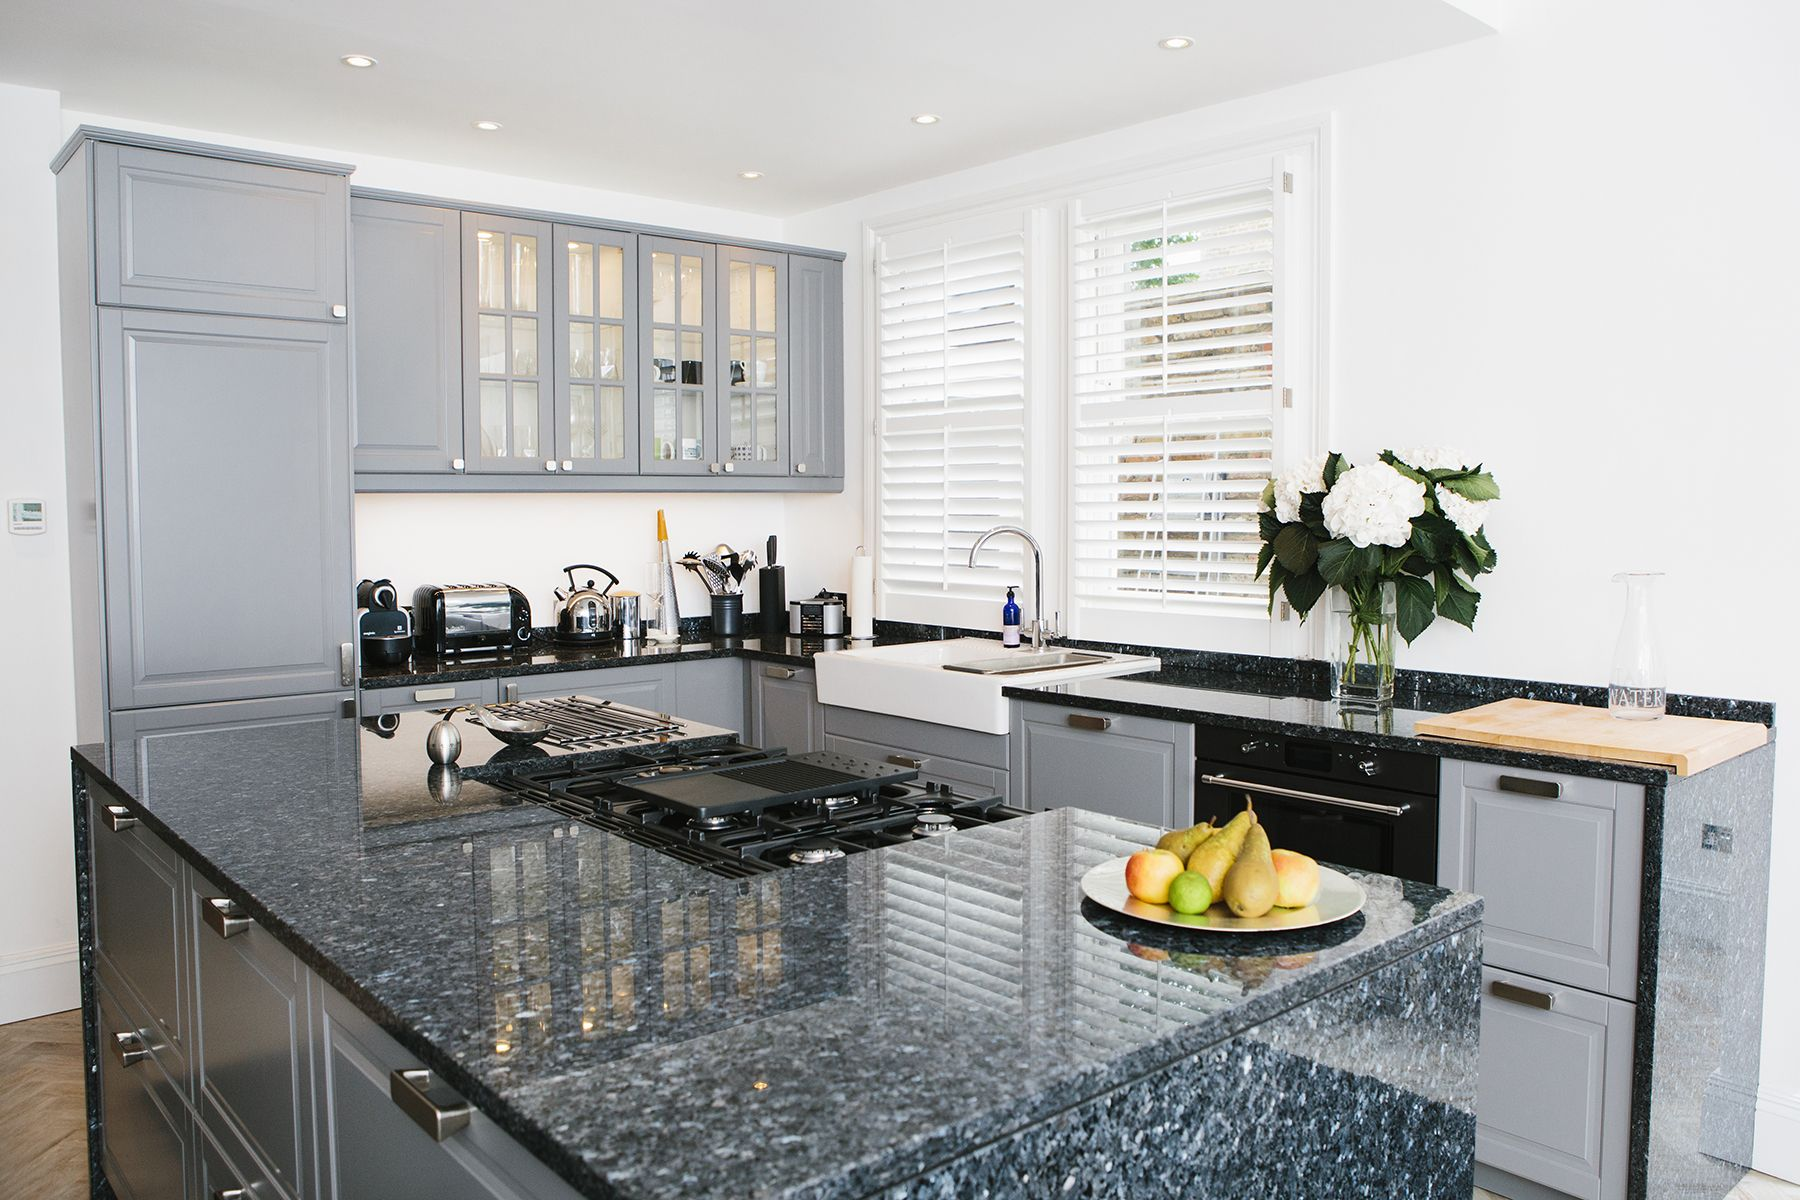 It's hard to believe these grey kitchen are from